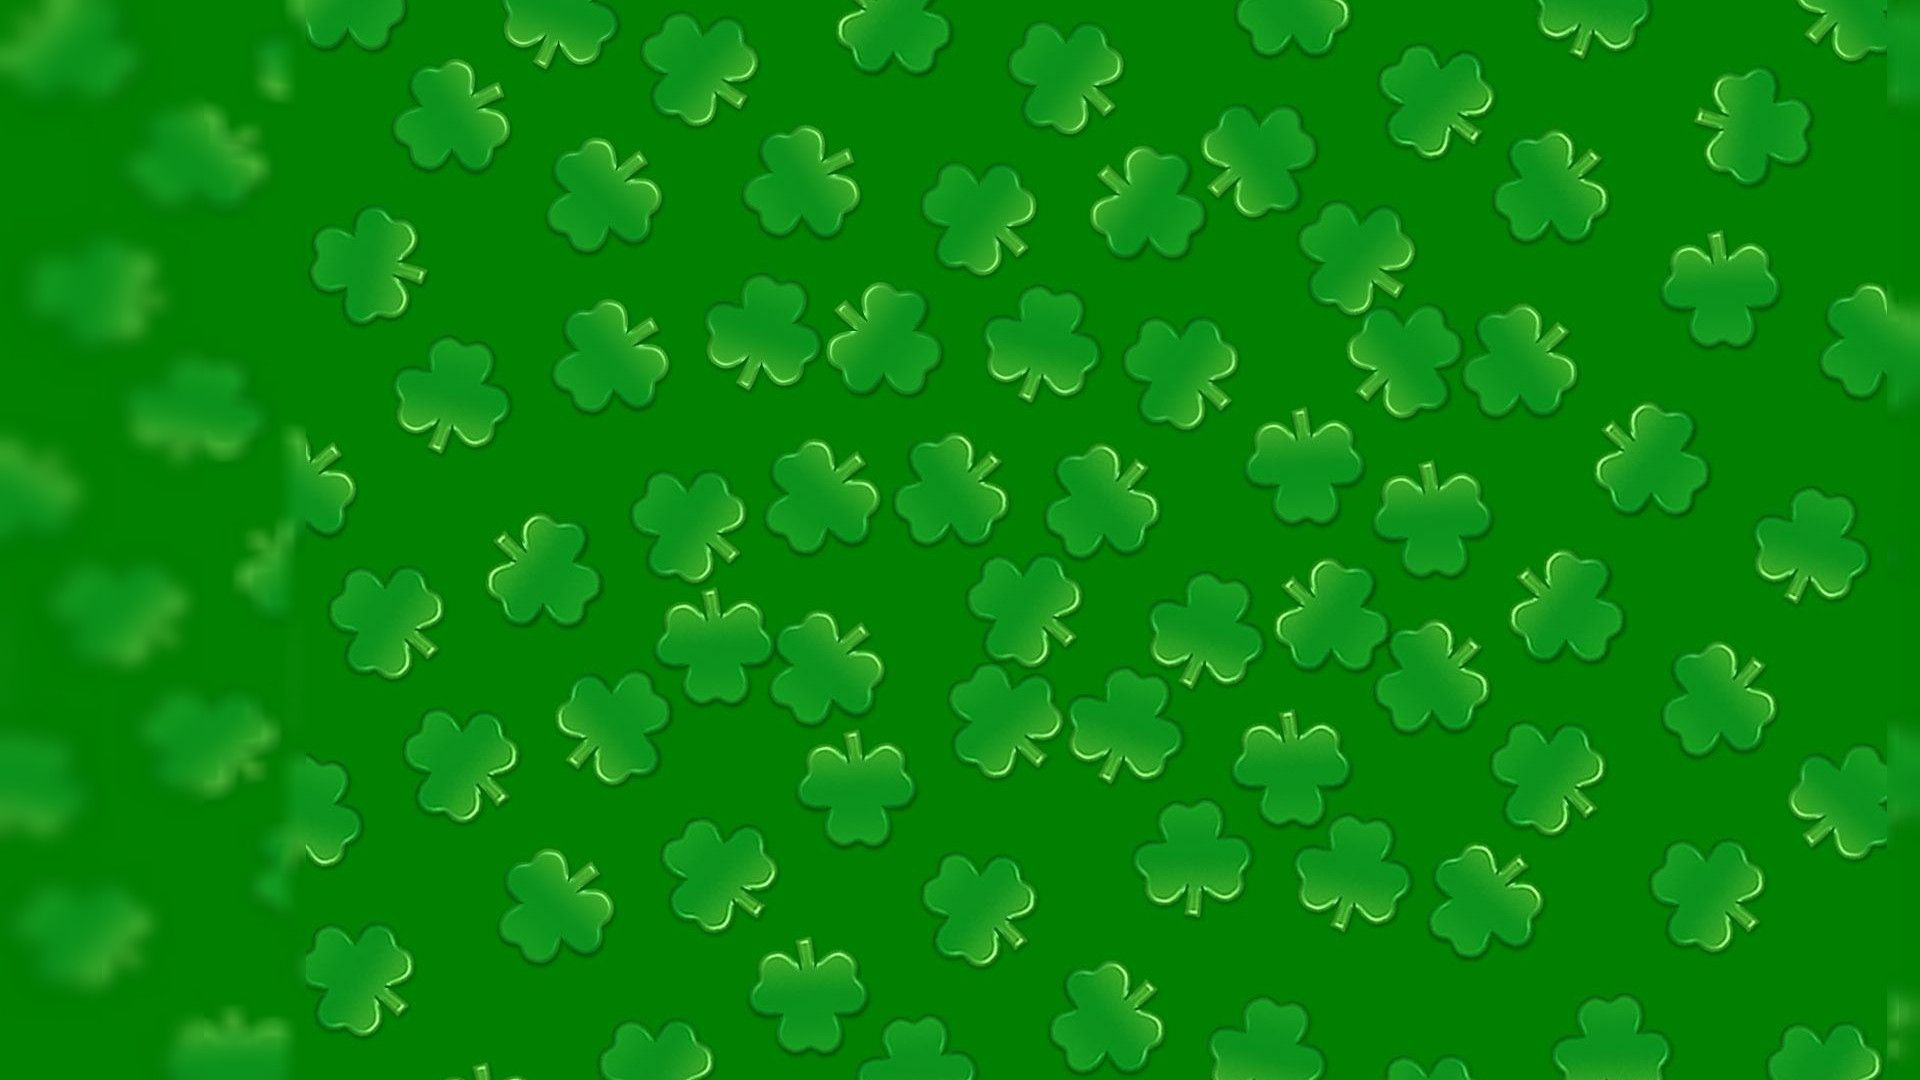 Best Attributes of the feast of st patricks day Wallpapers 8 1920x1080